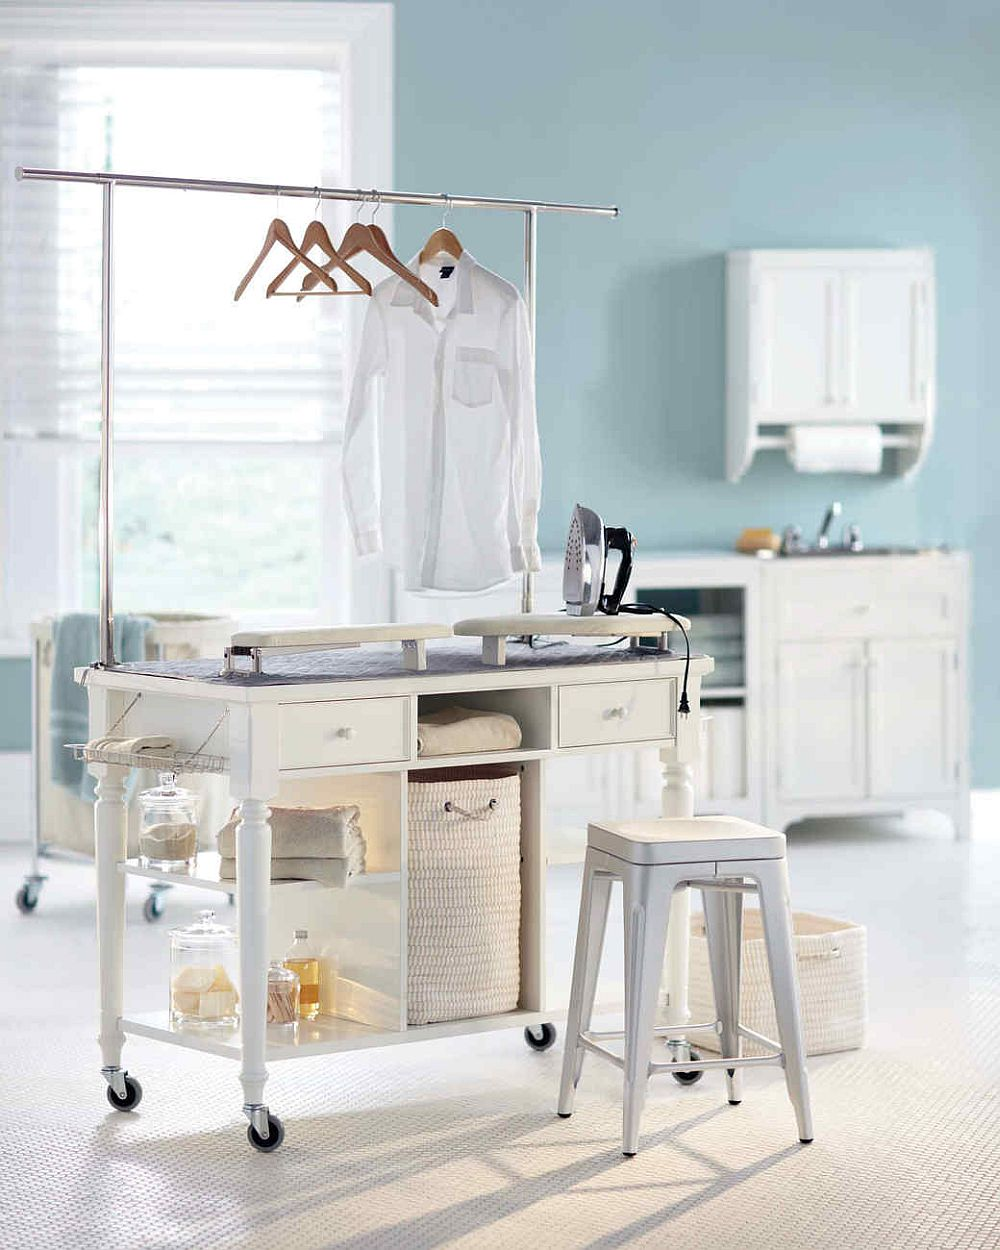 Laundry Room Carts 12 Mobile And Space Savvy Ways To